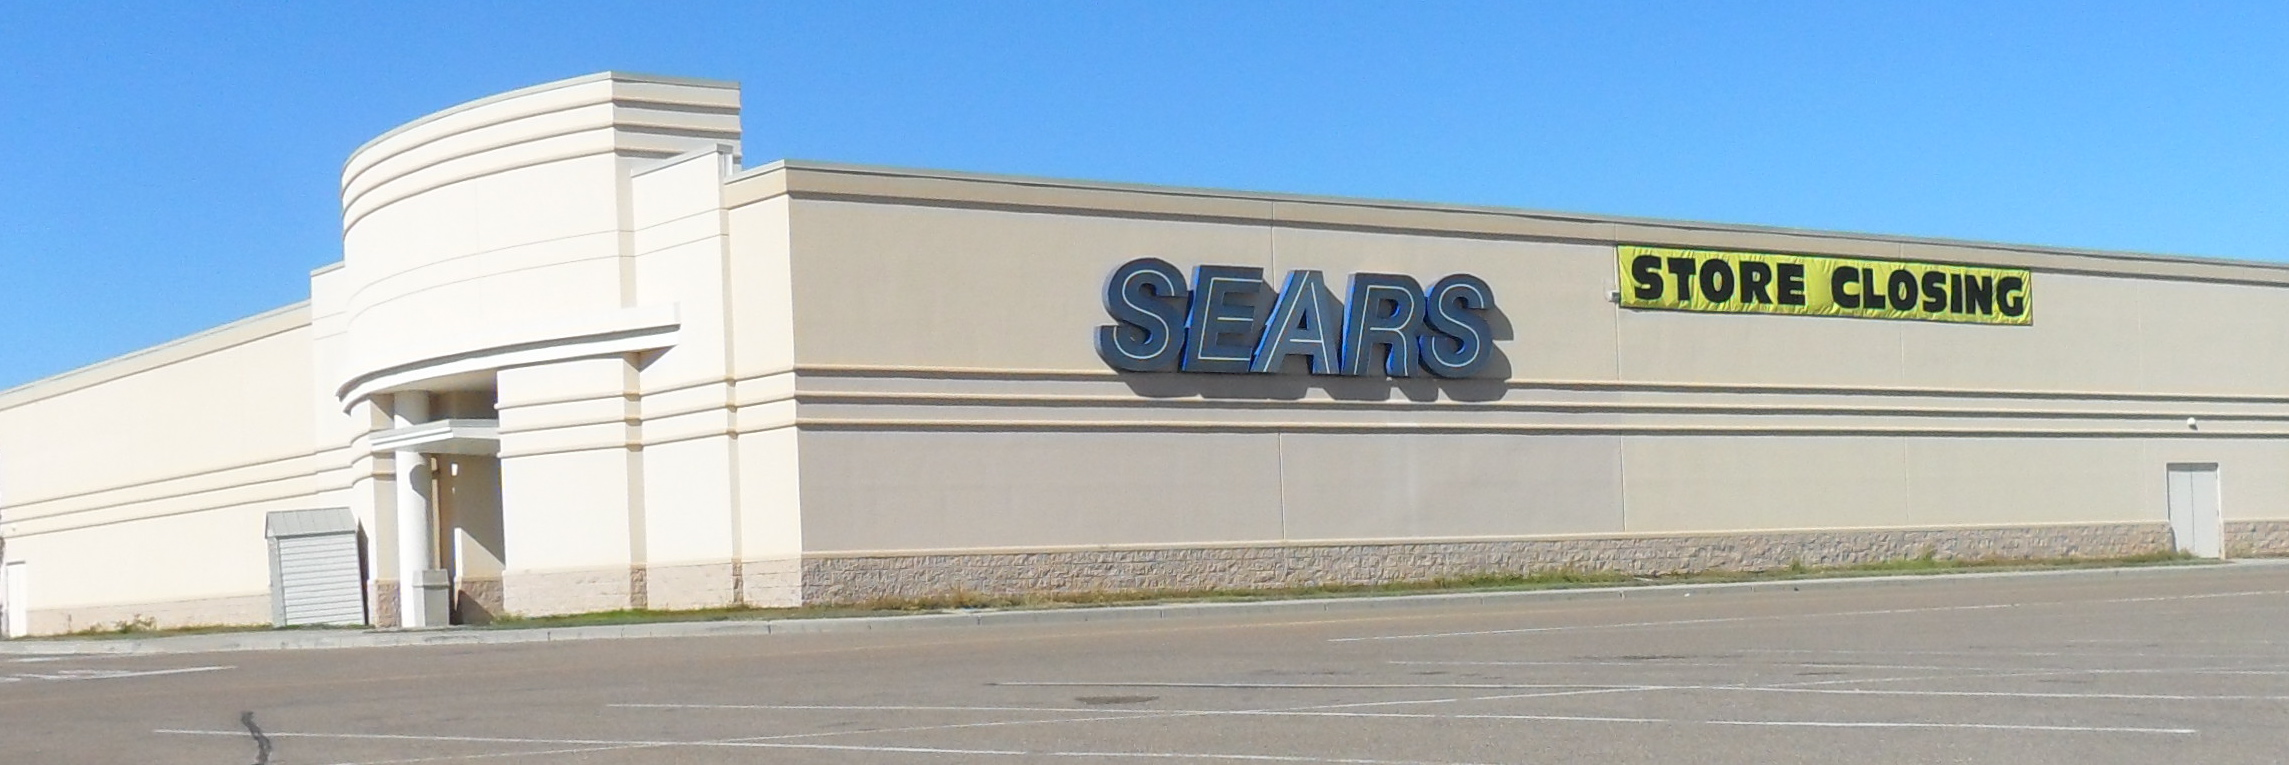 Sears The Collapse Of A Company From Within Technology